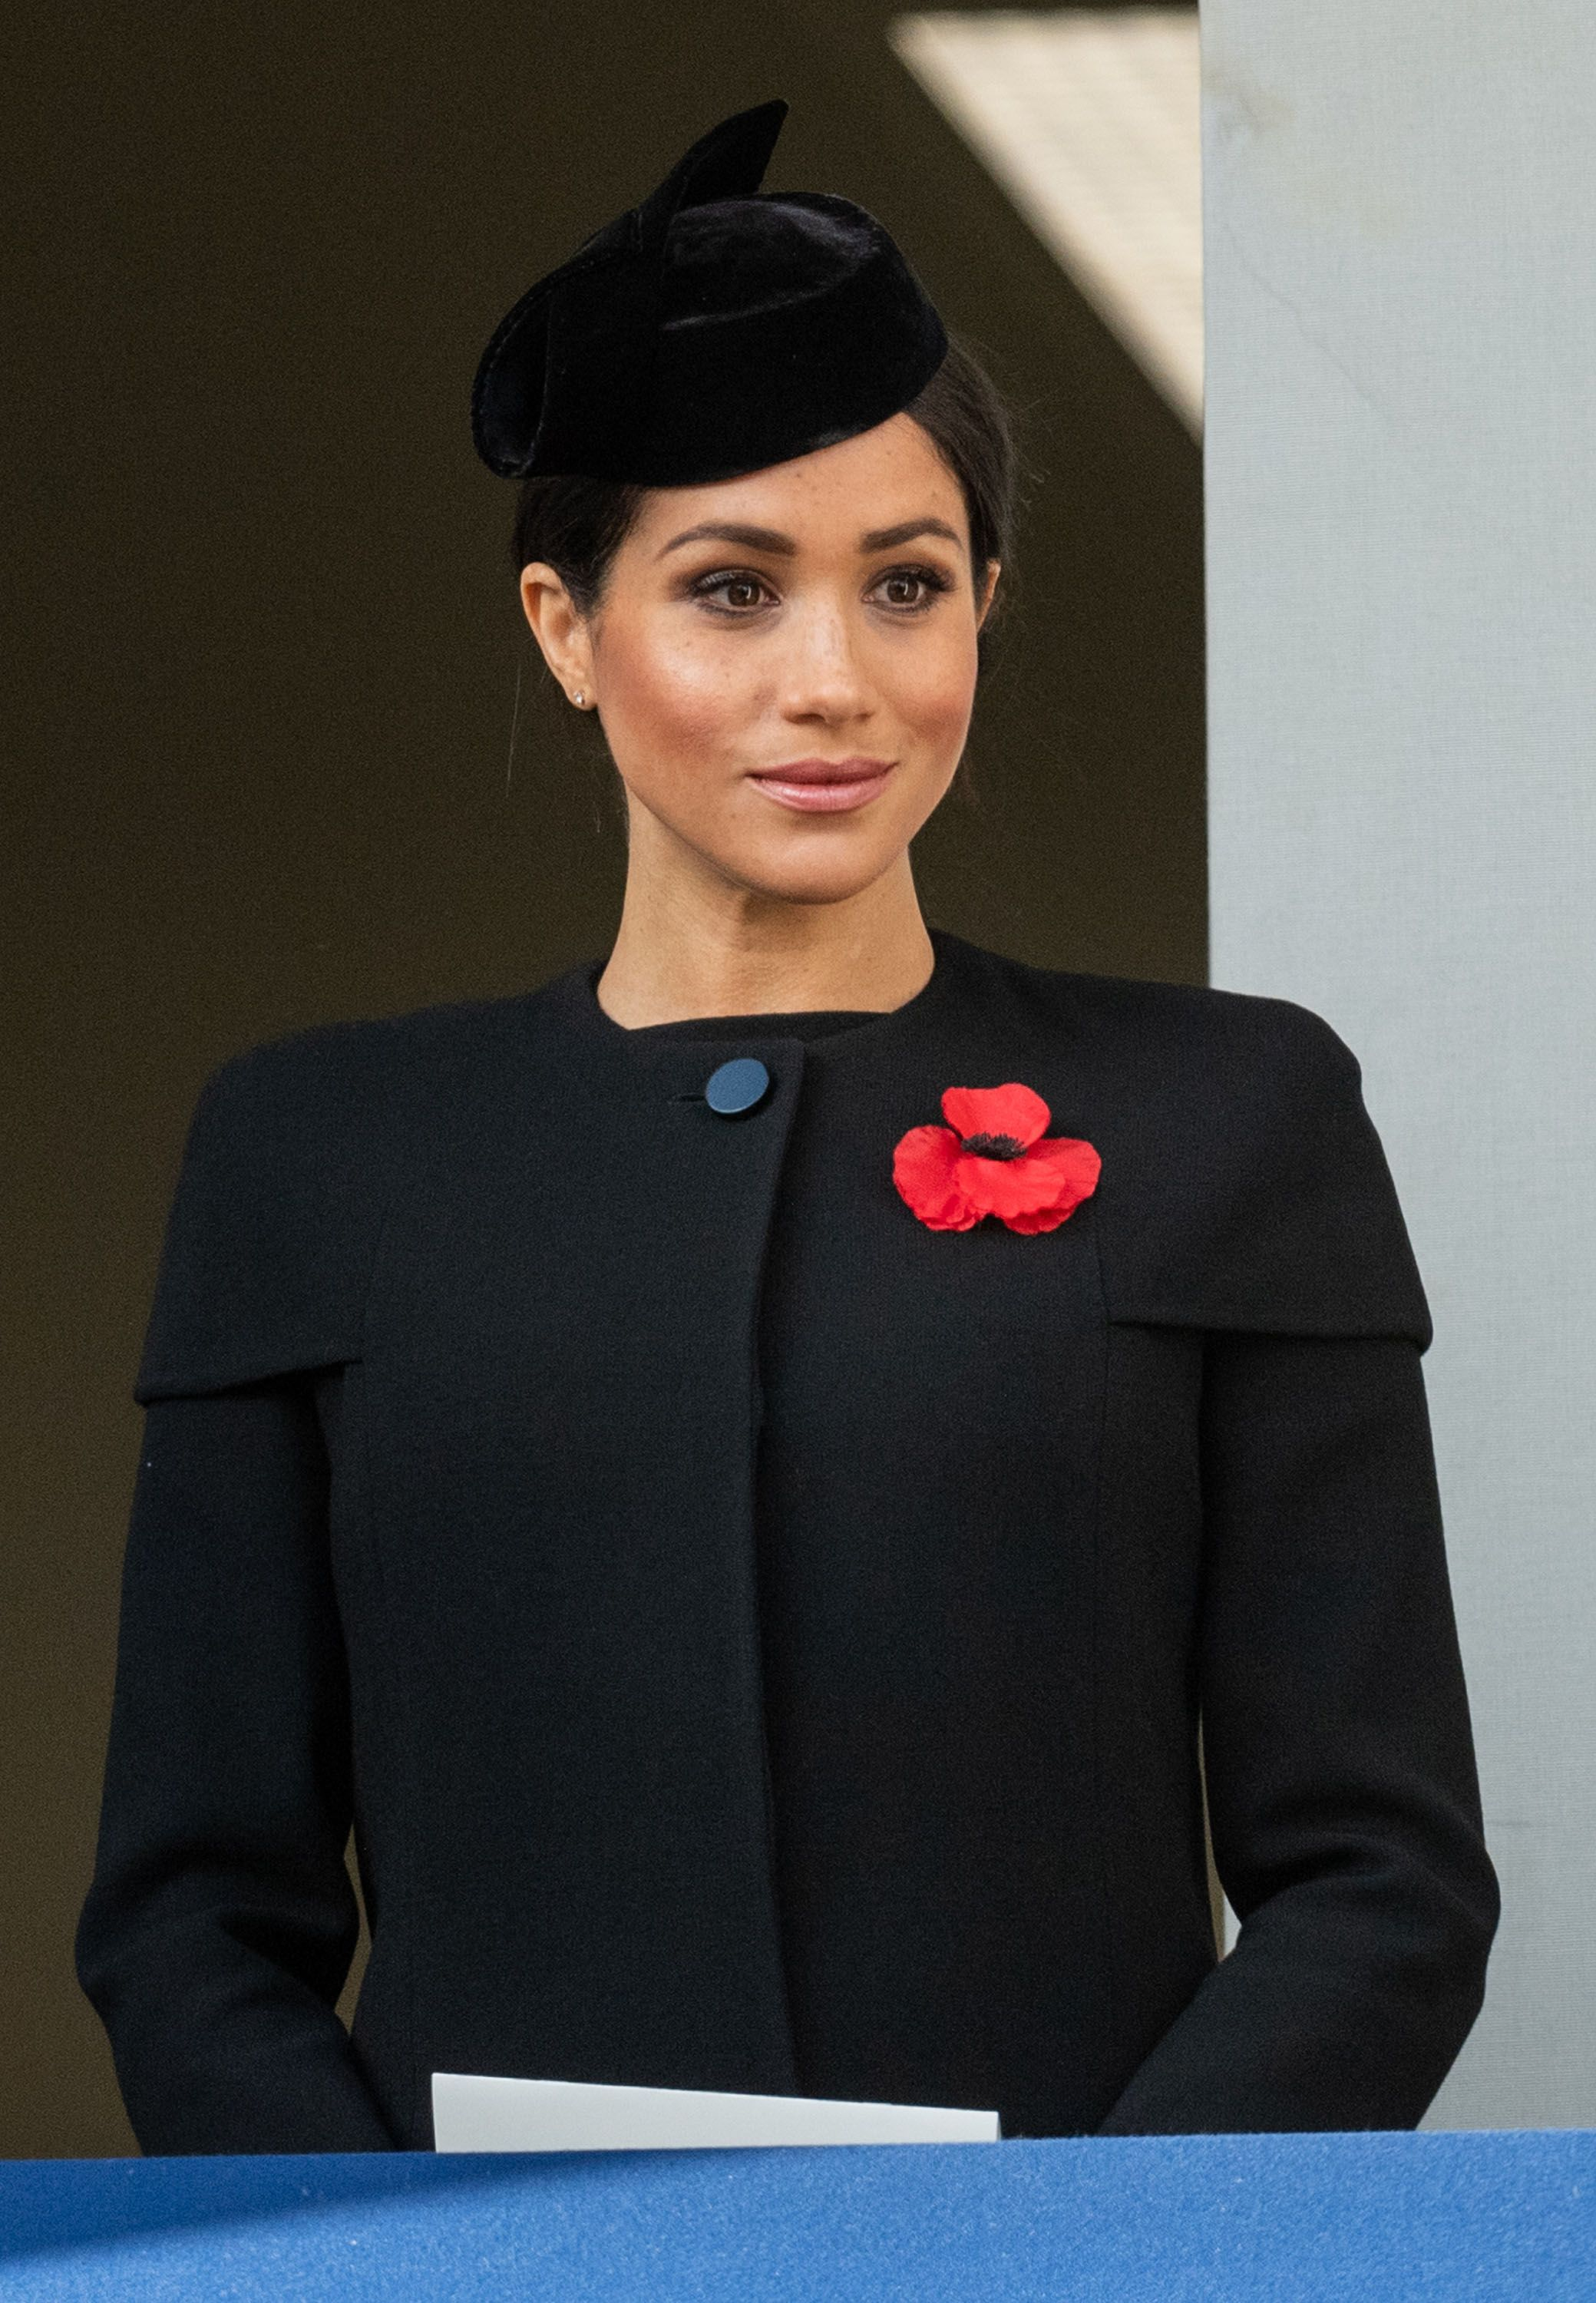 photos of meghan markle kate middleton attending the remembrance day centenary service meghan markle kate middleton